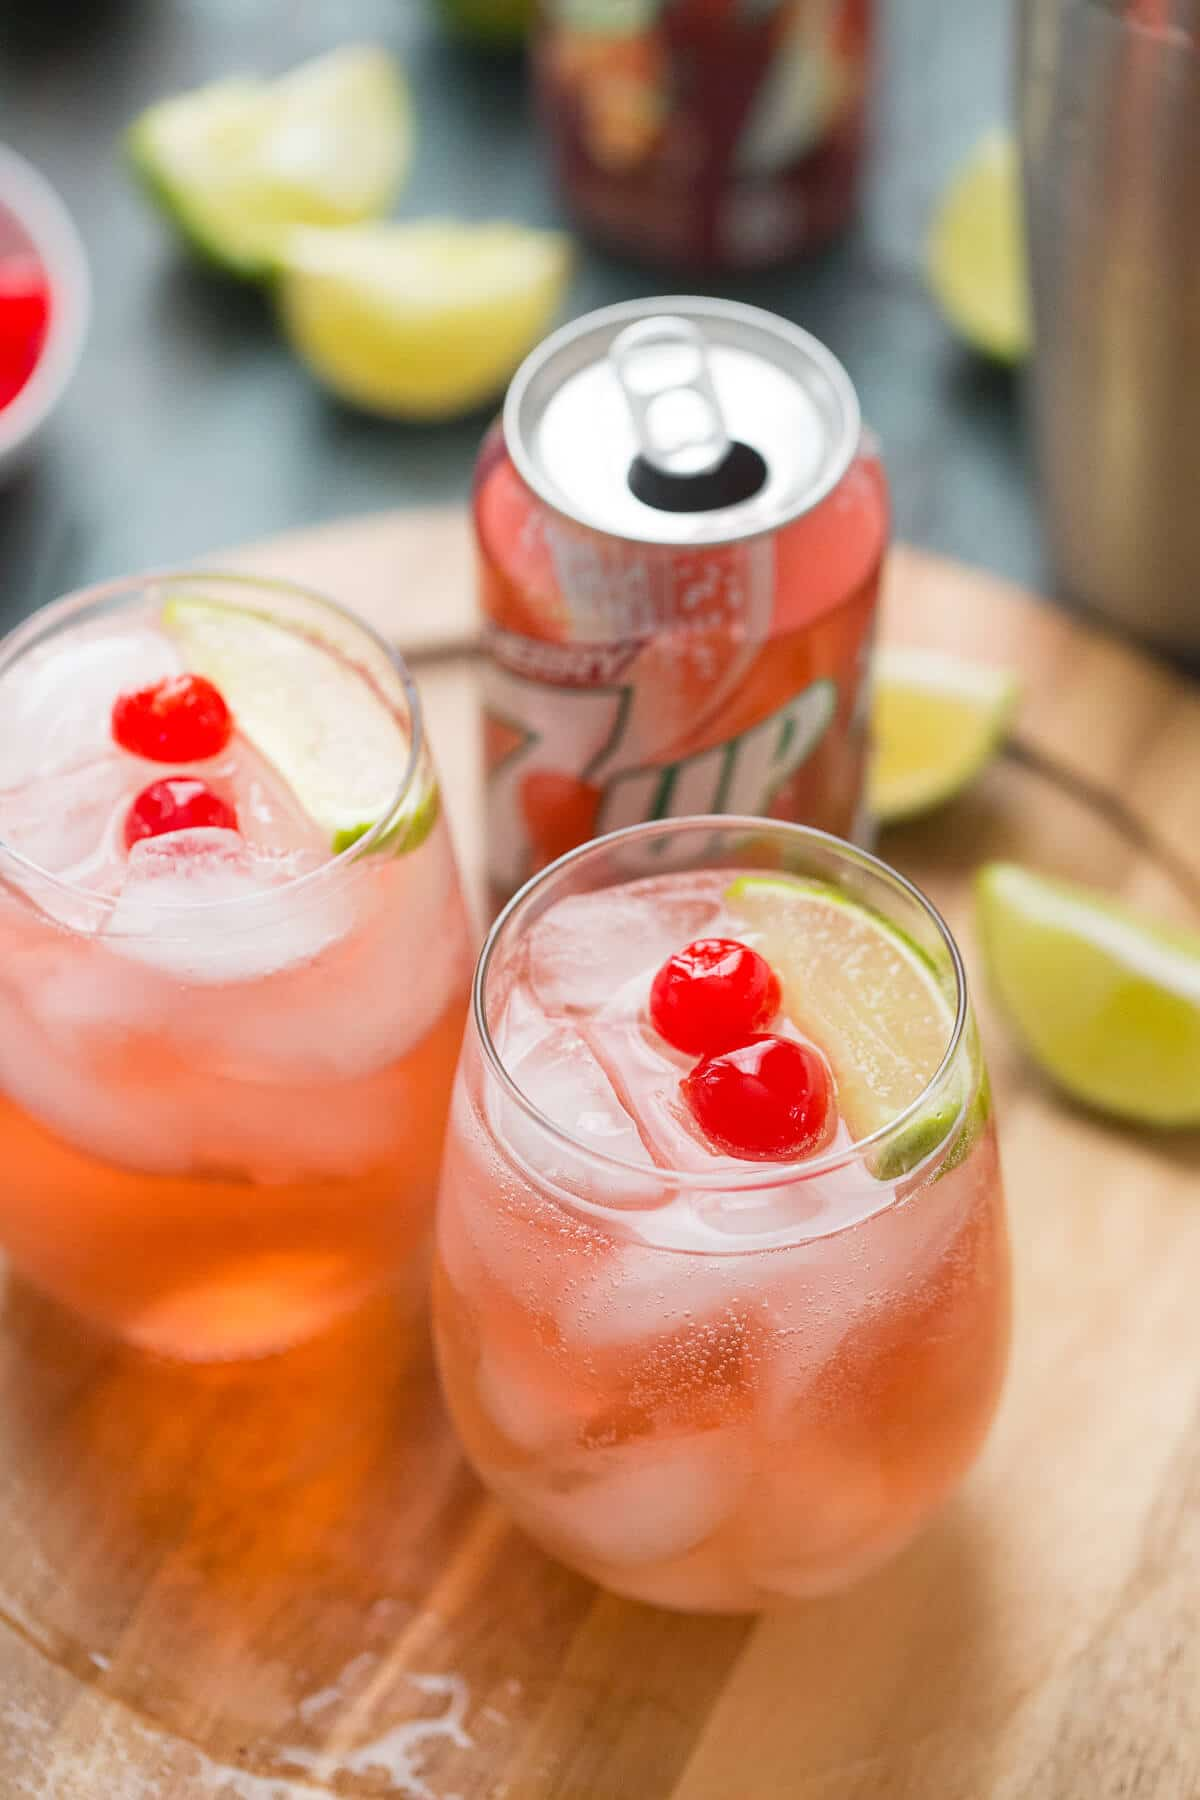 vodka sour with a can of cherry 7Up